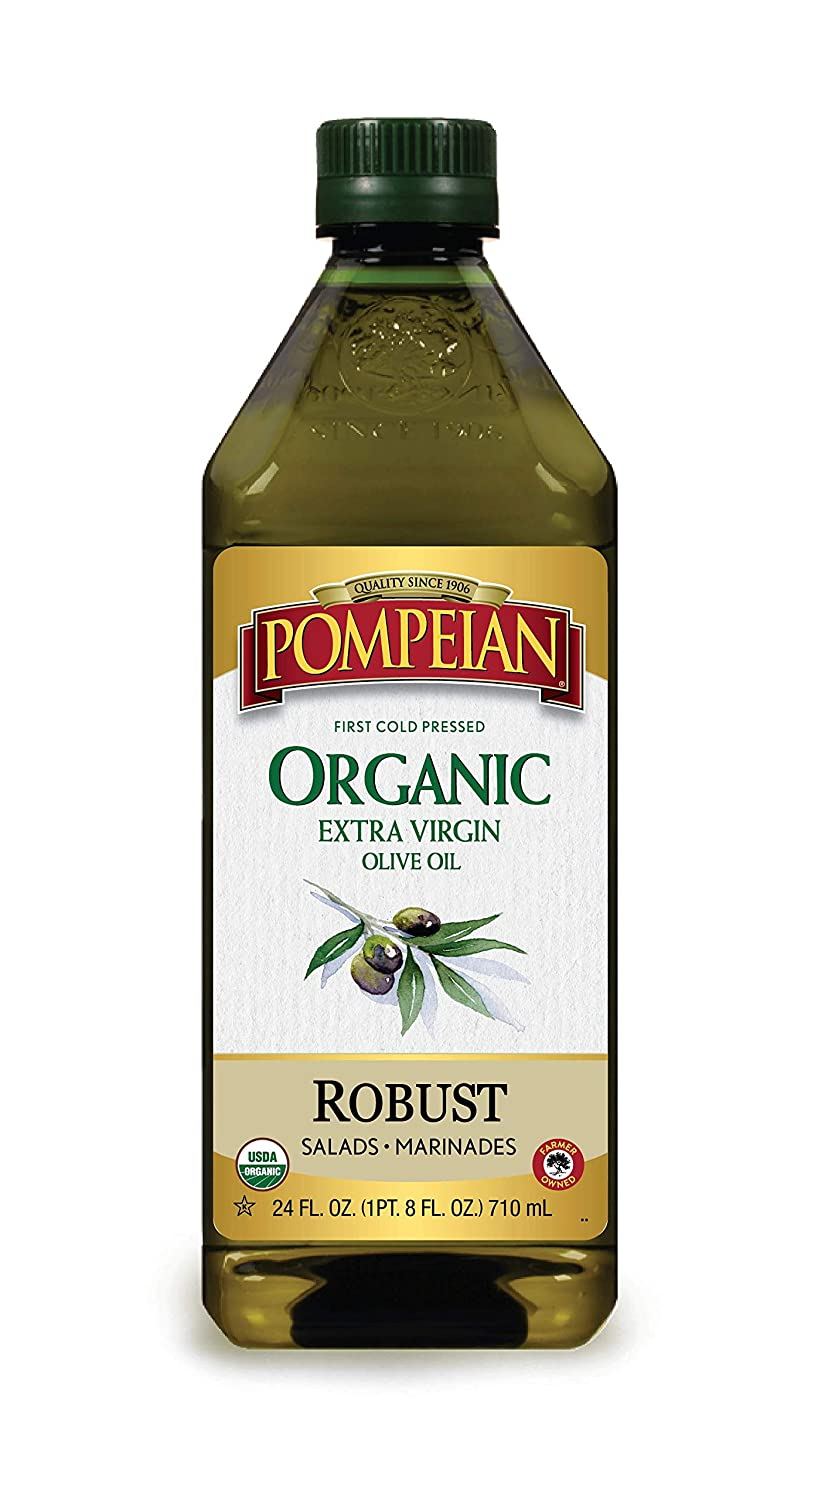 Amazon.com : Pompeian USDA Organic Extra Virgin Olive Oil, First Cold  Pressed, Full-Bodied Flavor, Perfect for Vinaigrettes & Marinades, 24 FL.  OZ. : Grocery & Gourmet Food